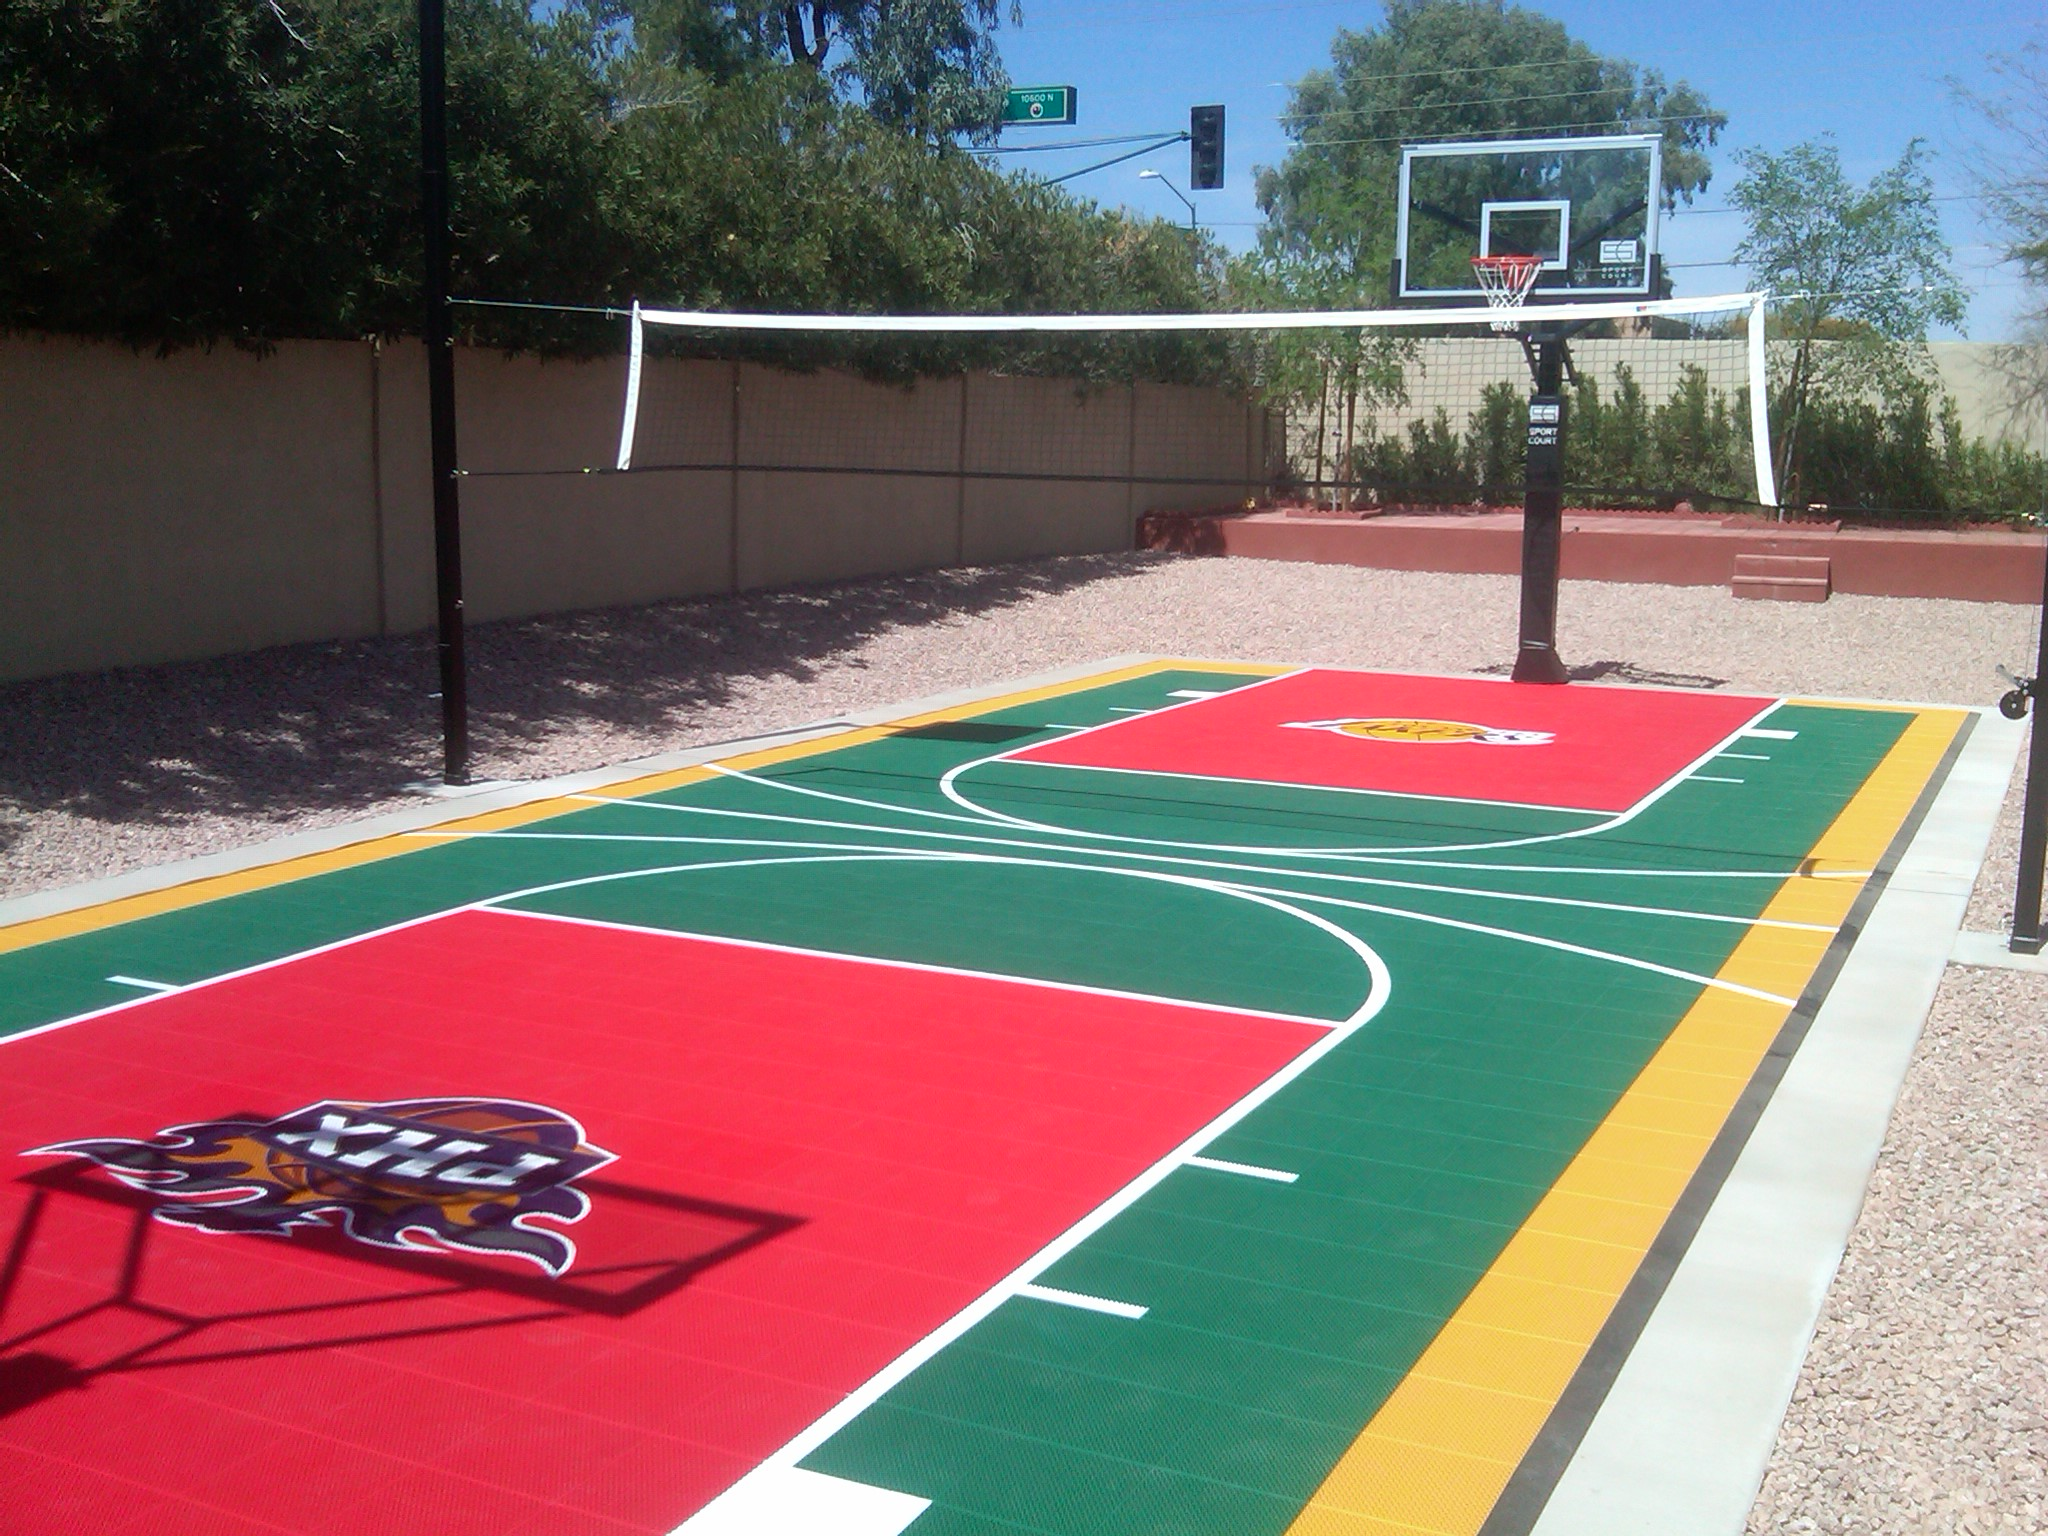 backyard design with basketball court 2015 best auto reviews